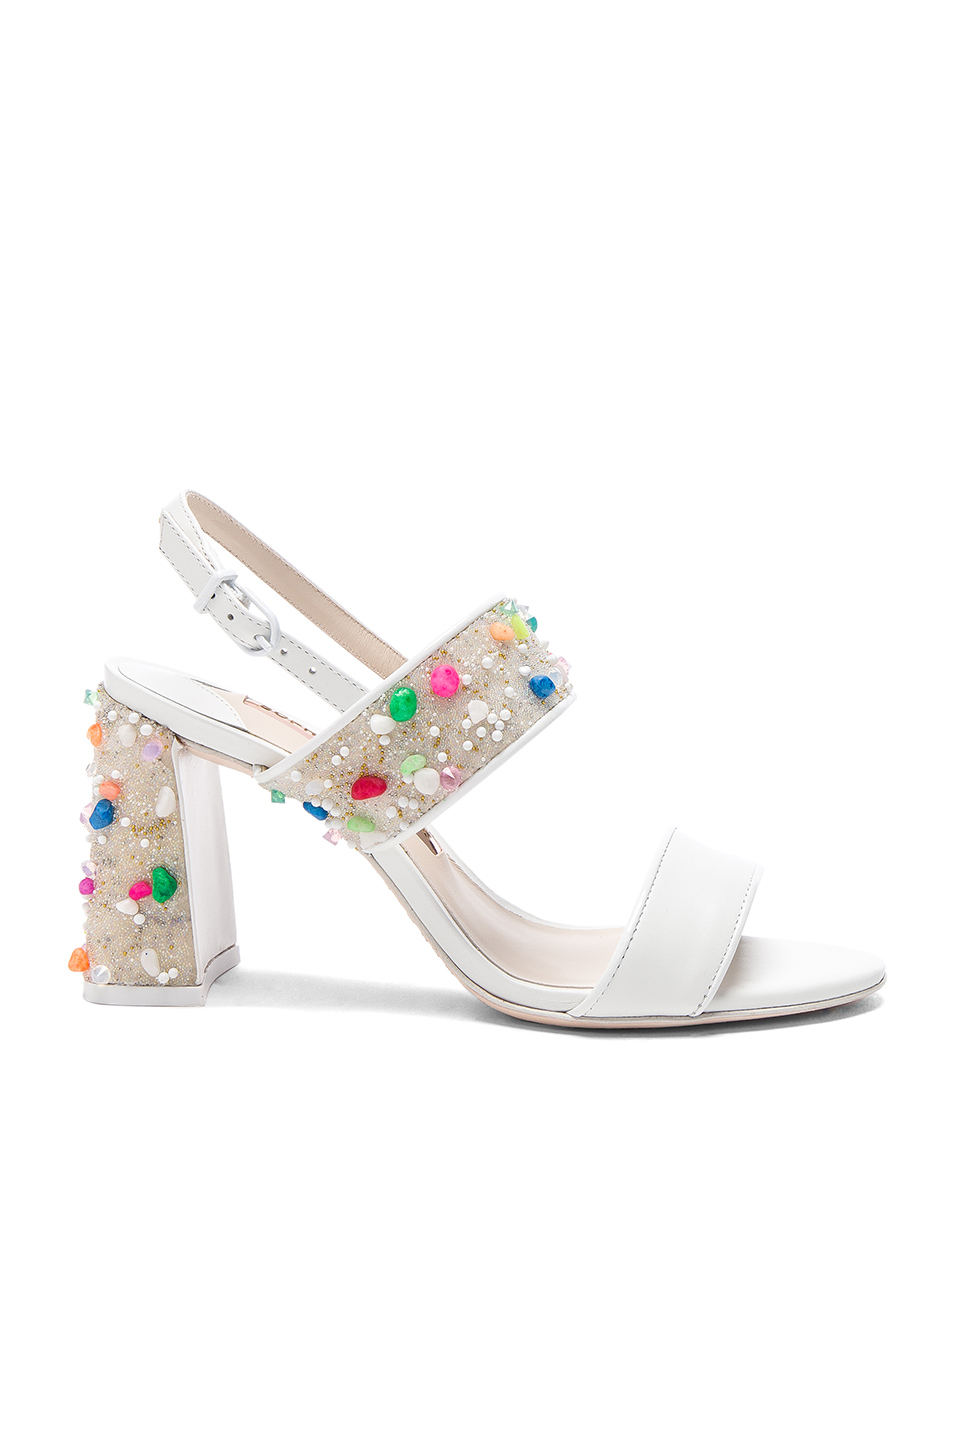 Sophia Webster Leather Clarice Mid Sandals in White